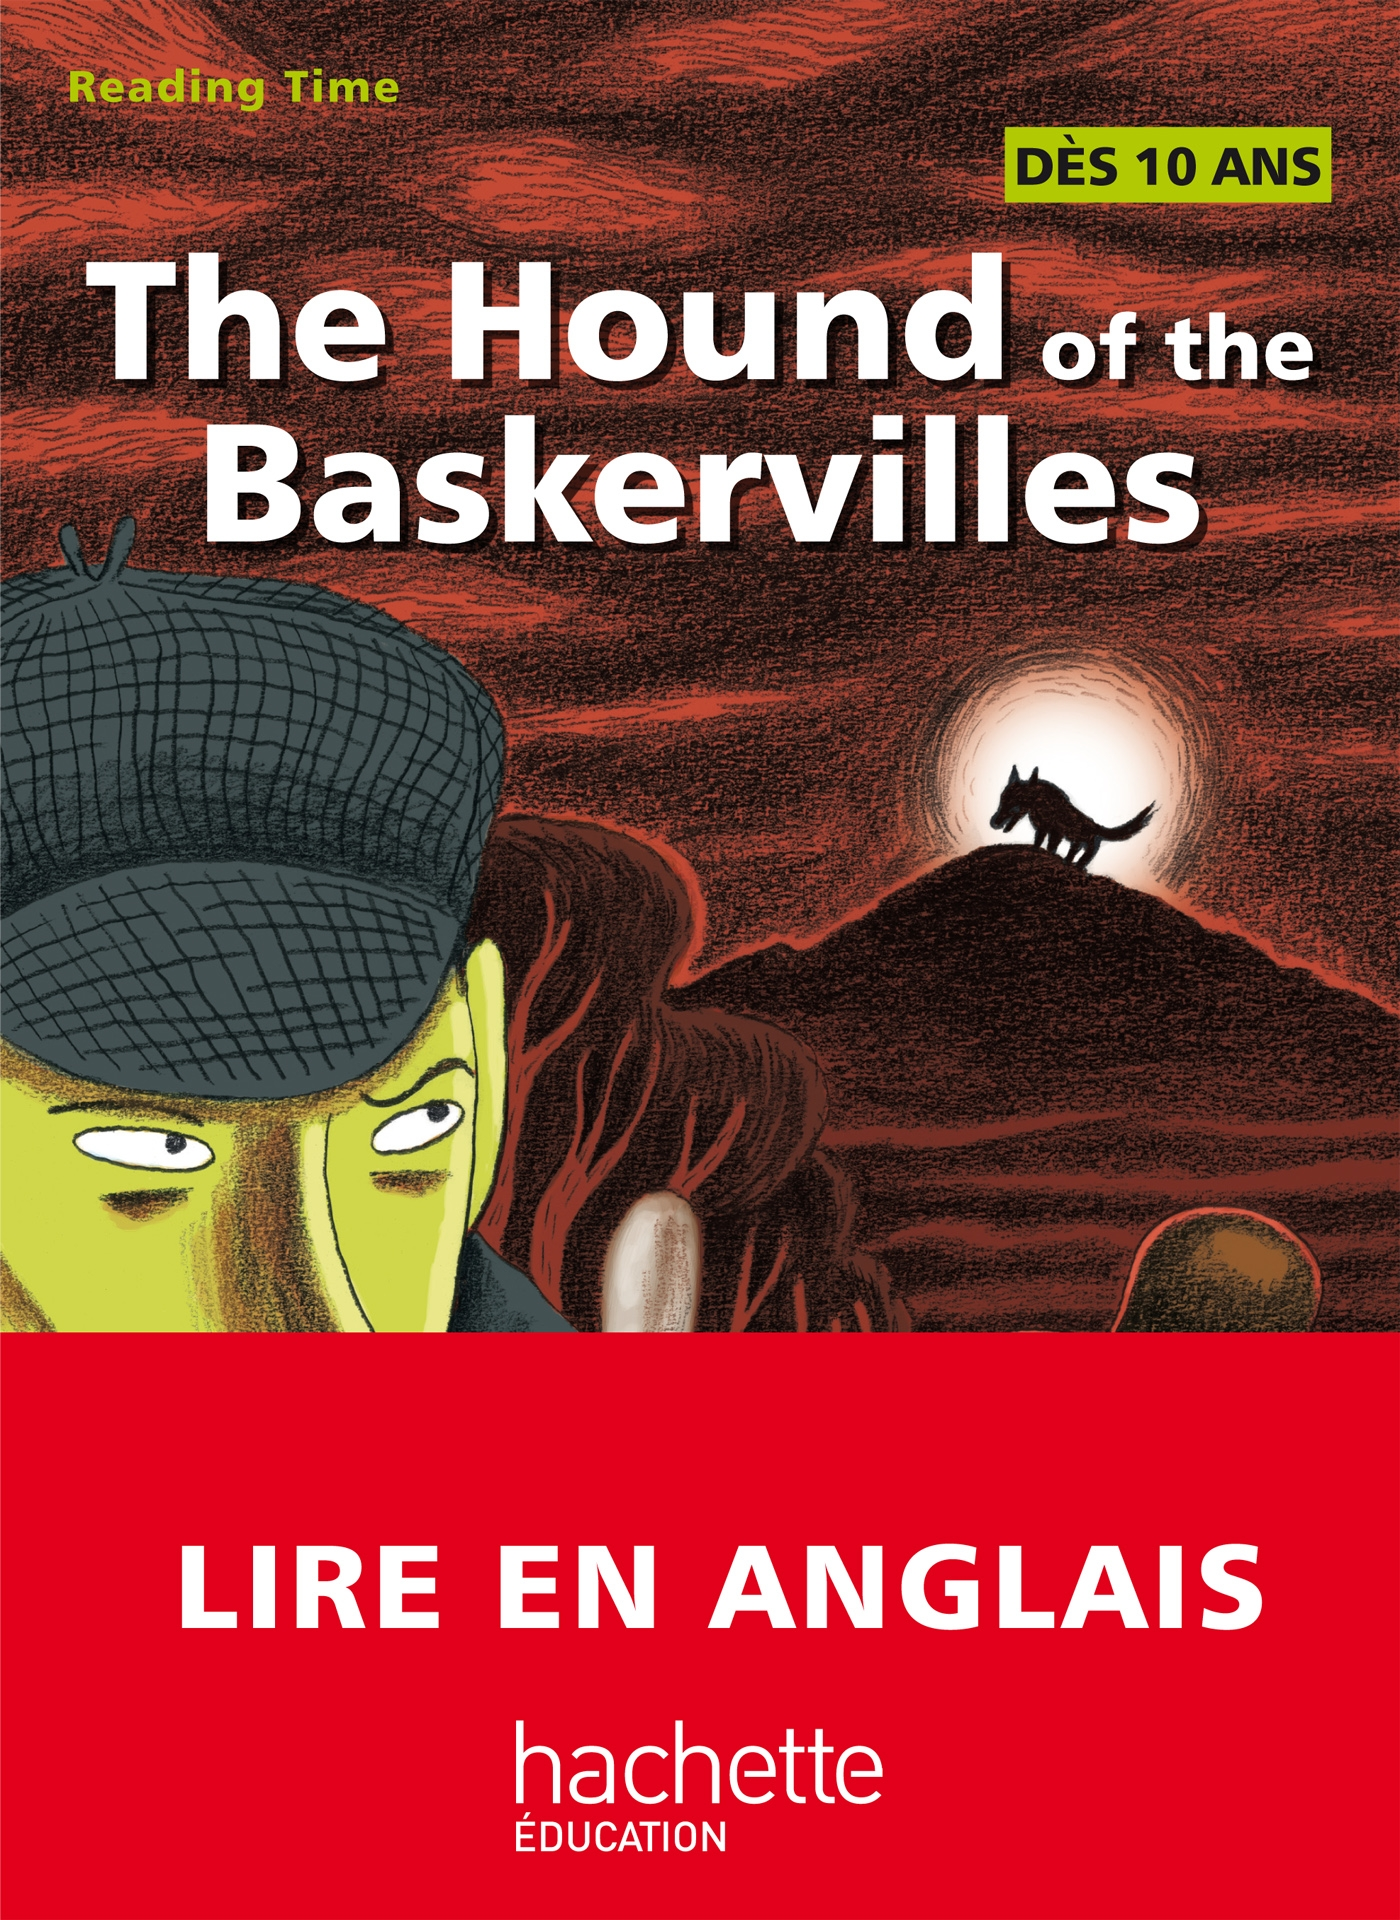 Reading Time - The Hound of the Baskervilles